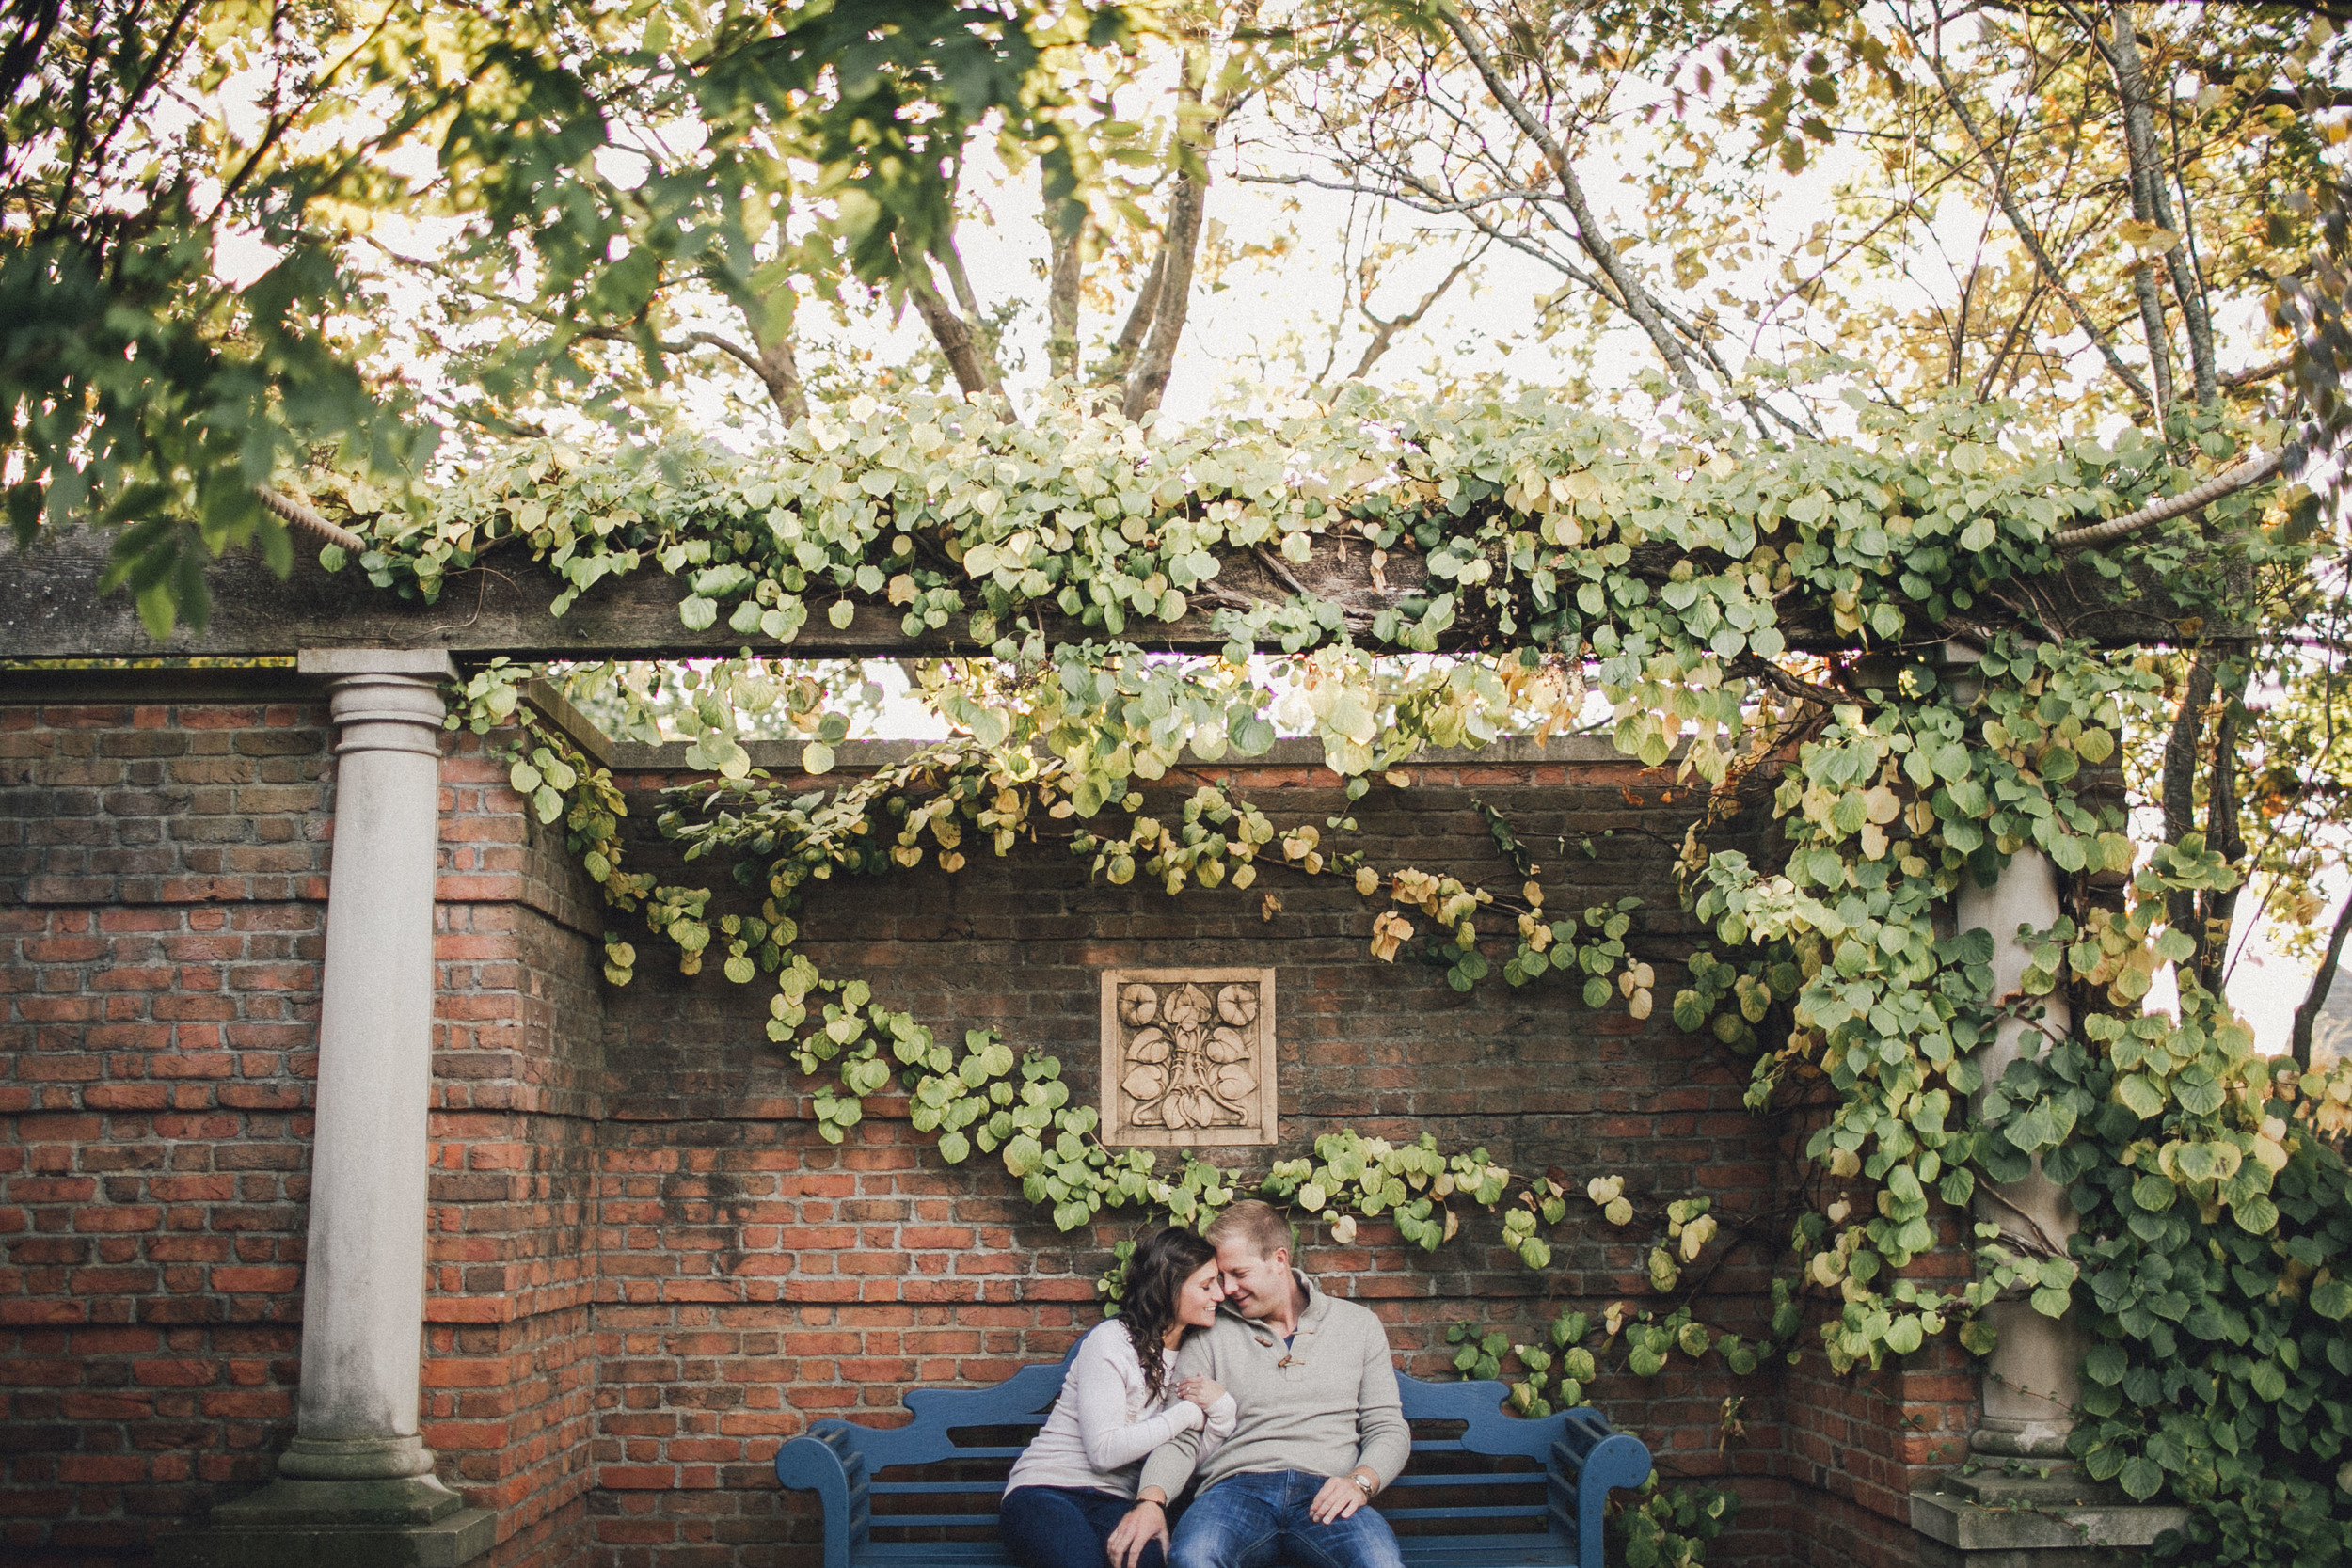 mayden photography_chicago botanical gardens engagement photo-31.jpg